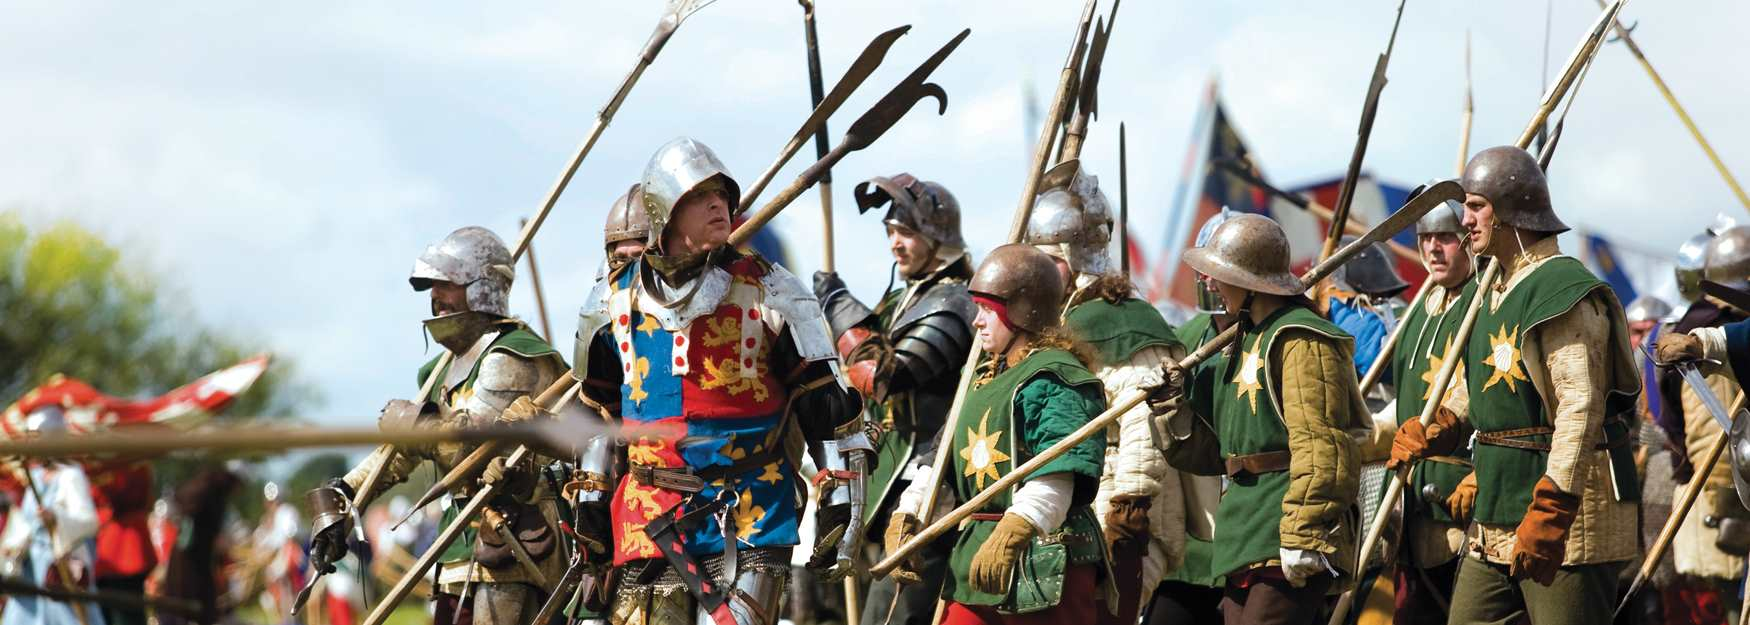 Battle of Tewkesbury 1471